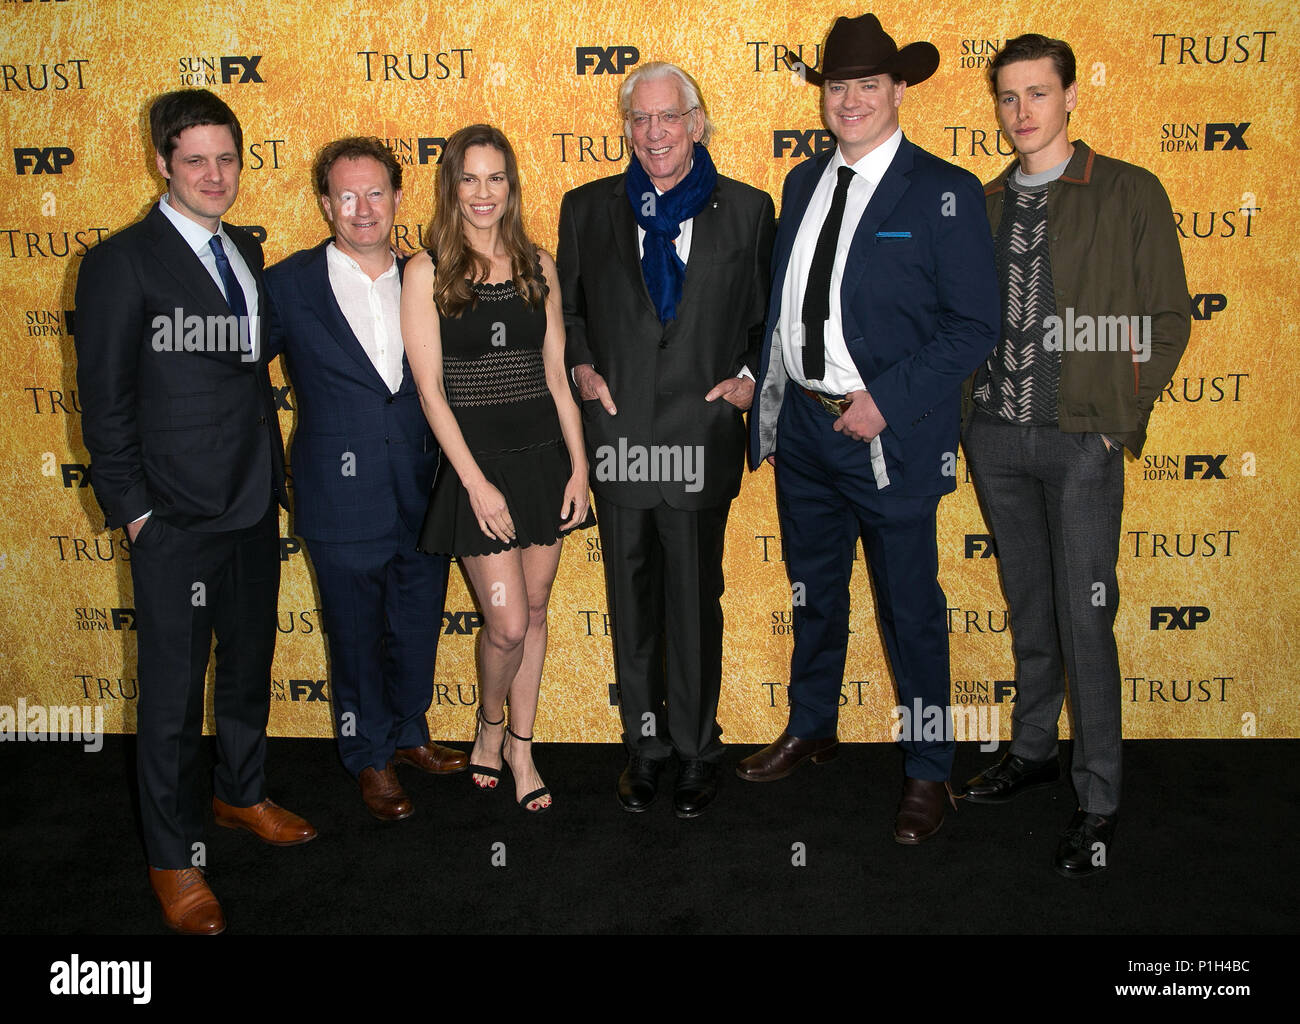 """Celebrities attend FYC Red Carpet Event for """"Trust,' at the Saban Media Center at the Television Academy.  Featuring: Michael Esper, Simon Beaufoy, Hilary Swank, Donald Sutherland, Brendan Fraser, Harris Dickinson Where: Los Angeles, California, United States When: 11 May 2018 Credit: Brian To/WENN.com - Stock Image"""